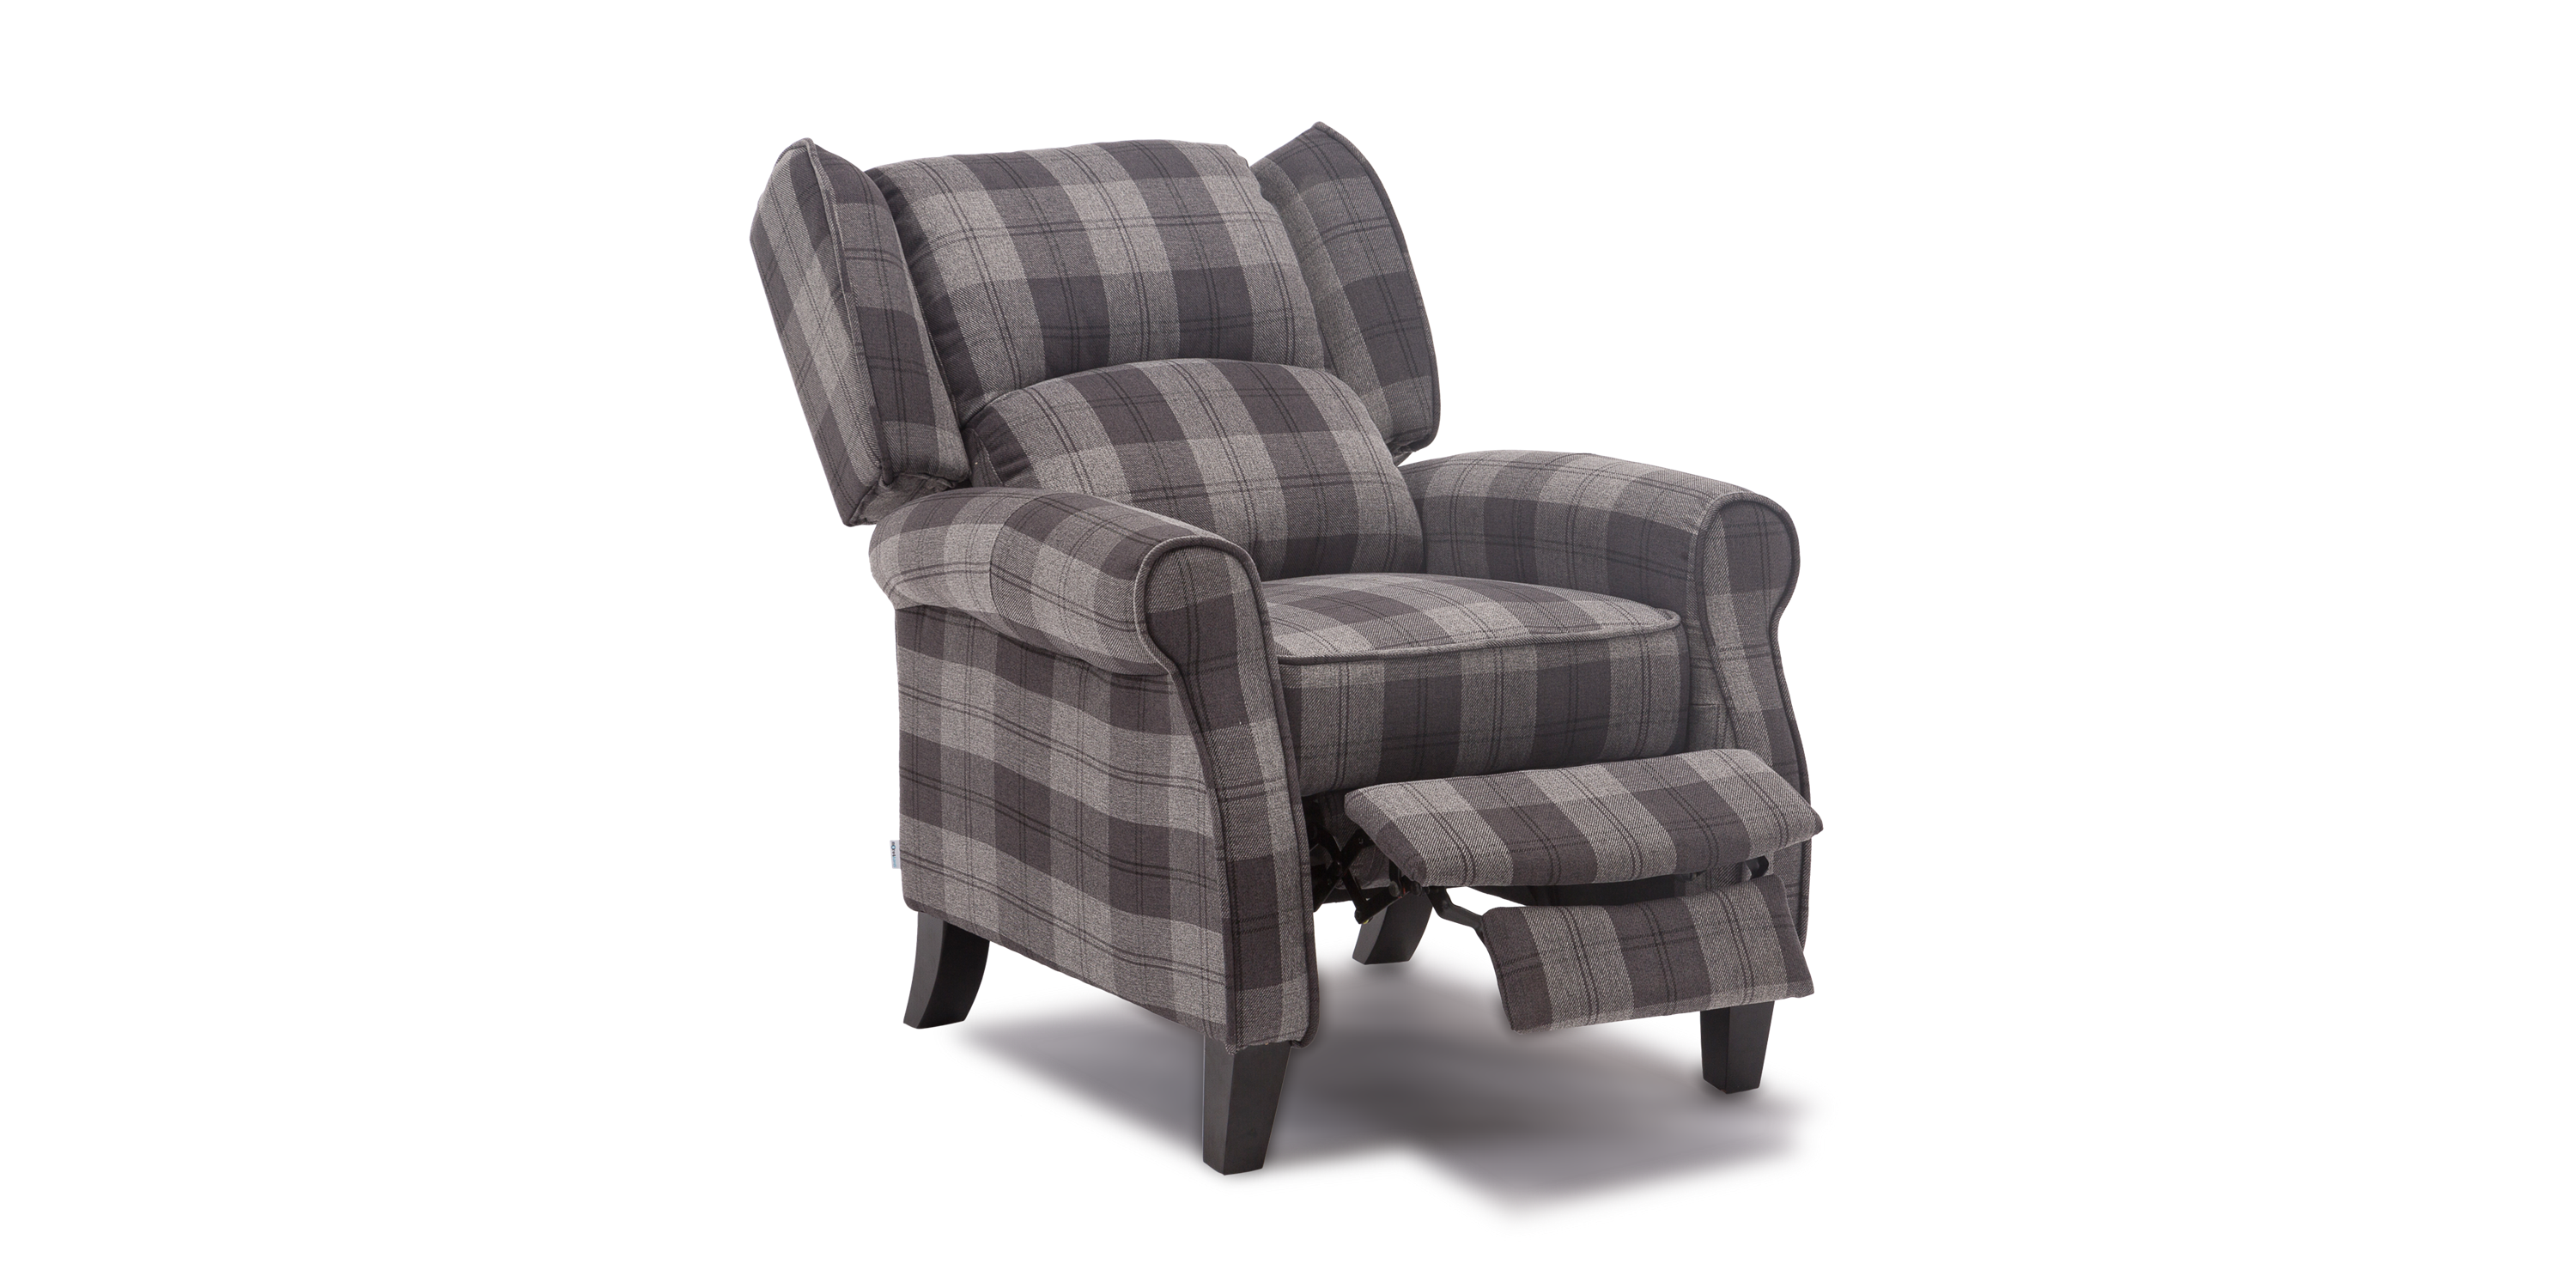 Eden Recliner Armchair In Tartan Grey